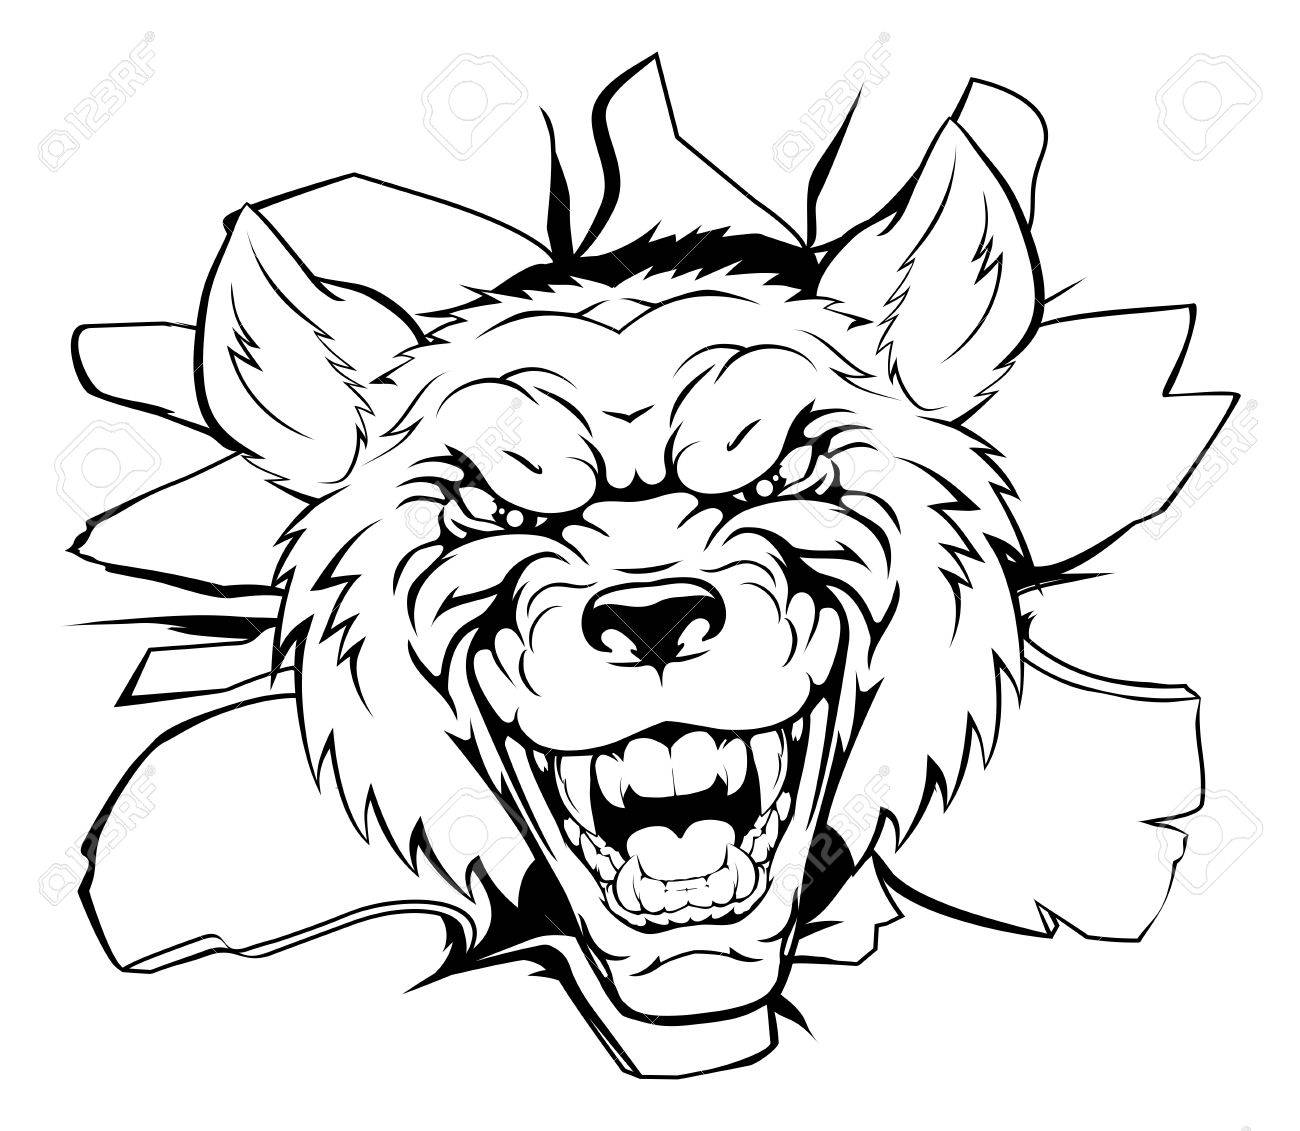 1300x1131 An Illustration Of A Cartoon Tough Wolf Character Face Tearing